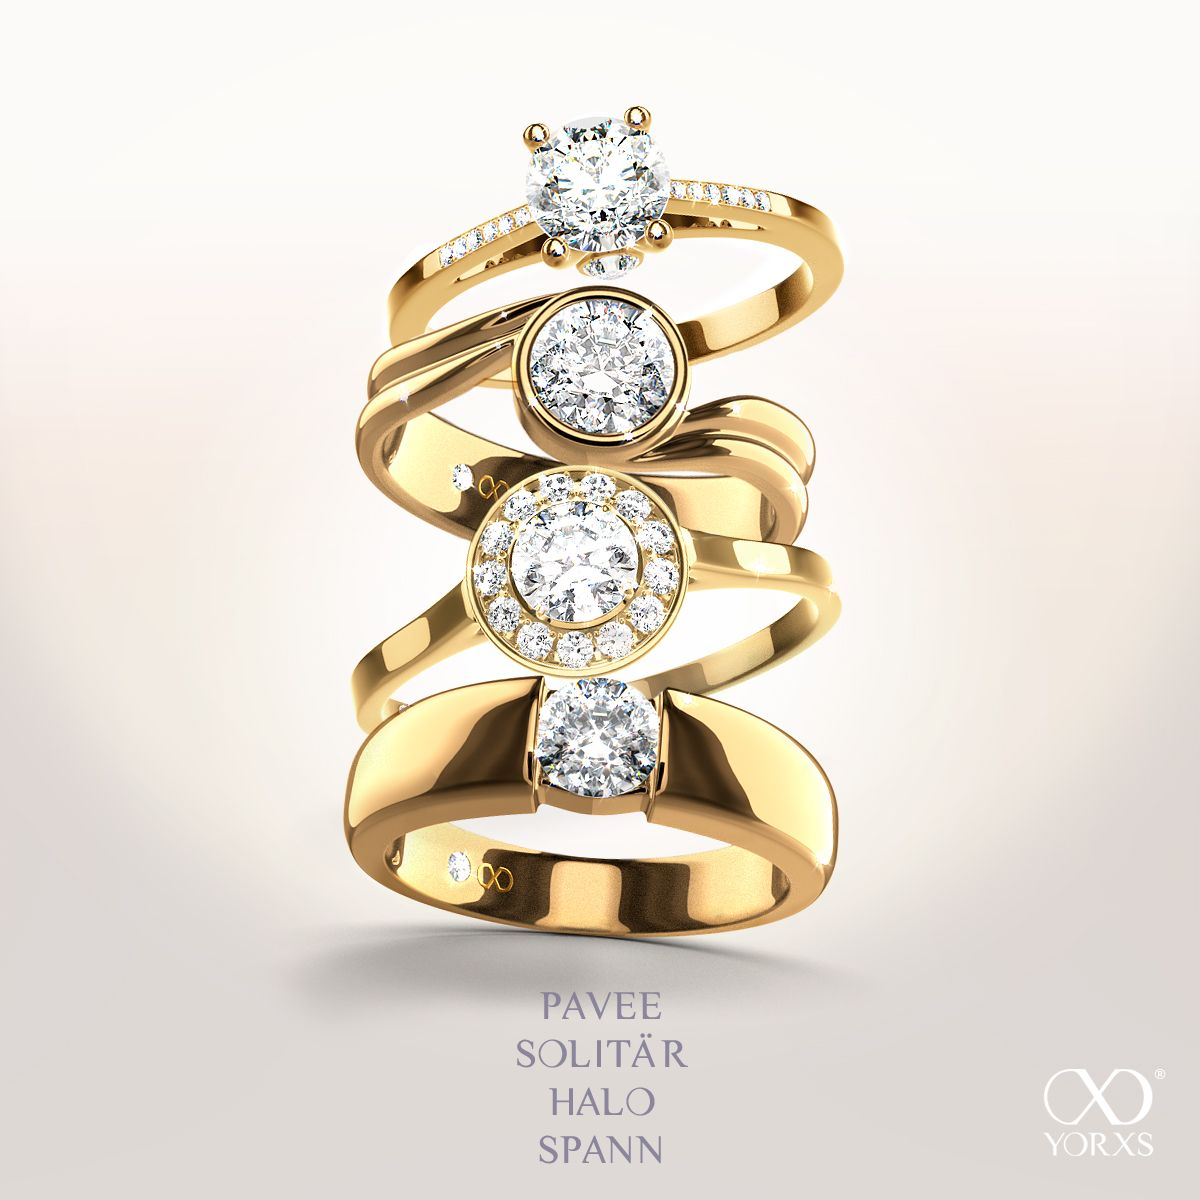 Select your perfect ring type #ring #diamantring #yorxs